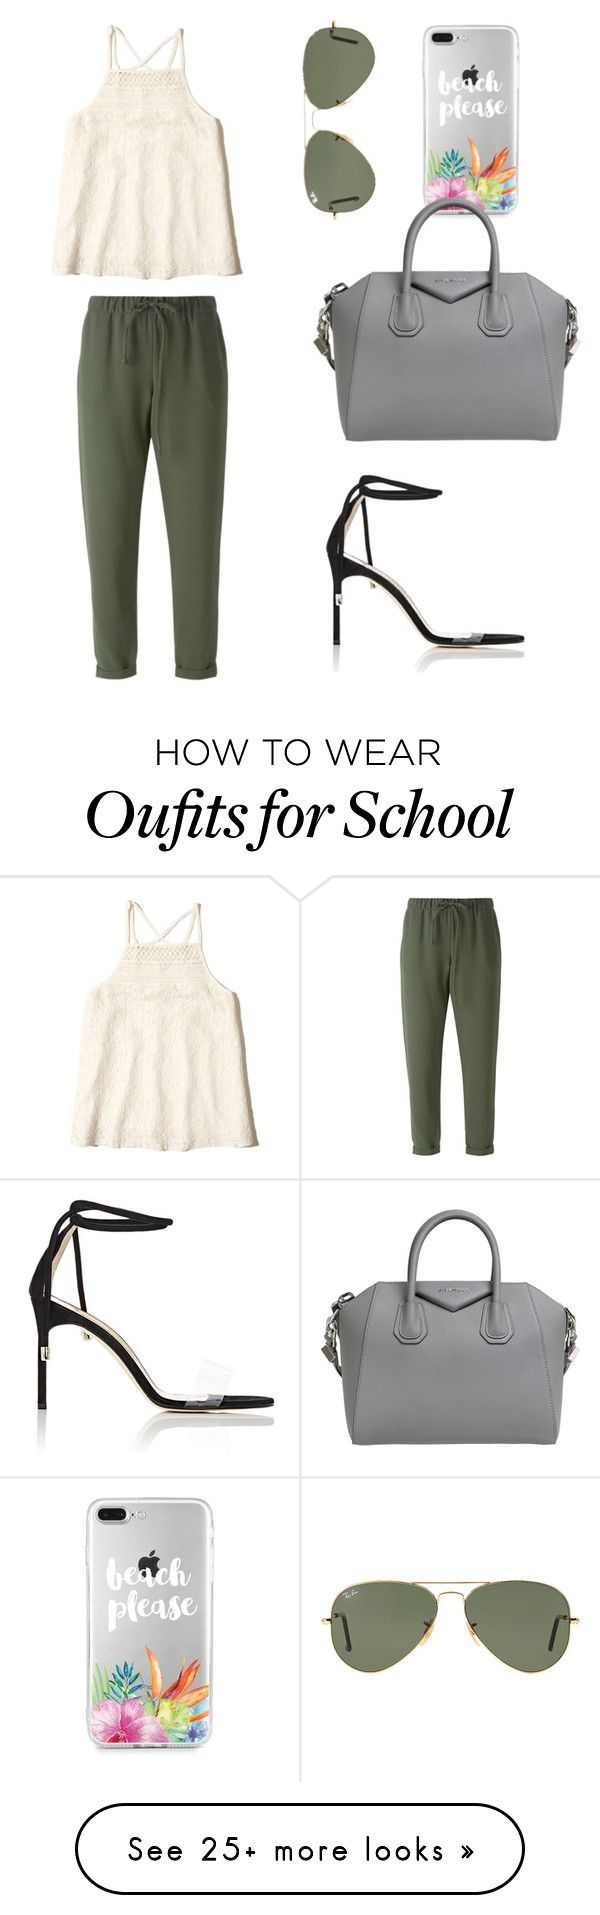 """""""School Meeting"""" by sarahfohlen on Polyvore featuring P.A.R.O.S.H., Ray-Ban, Givenchy, Manolo Blahnik, Hollister Co., Spring and 2k17"""